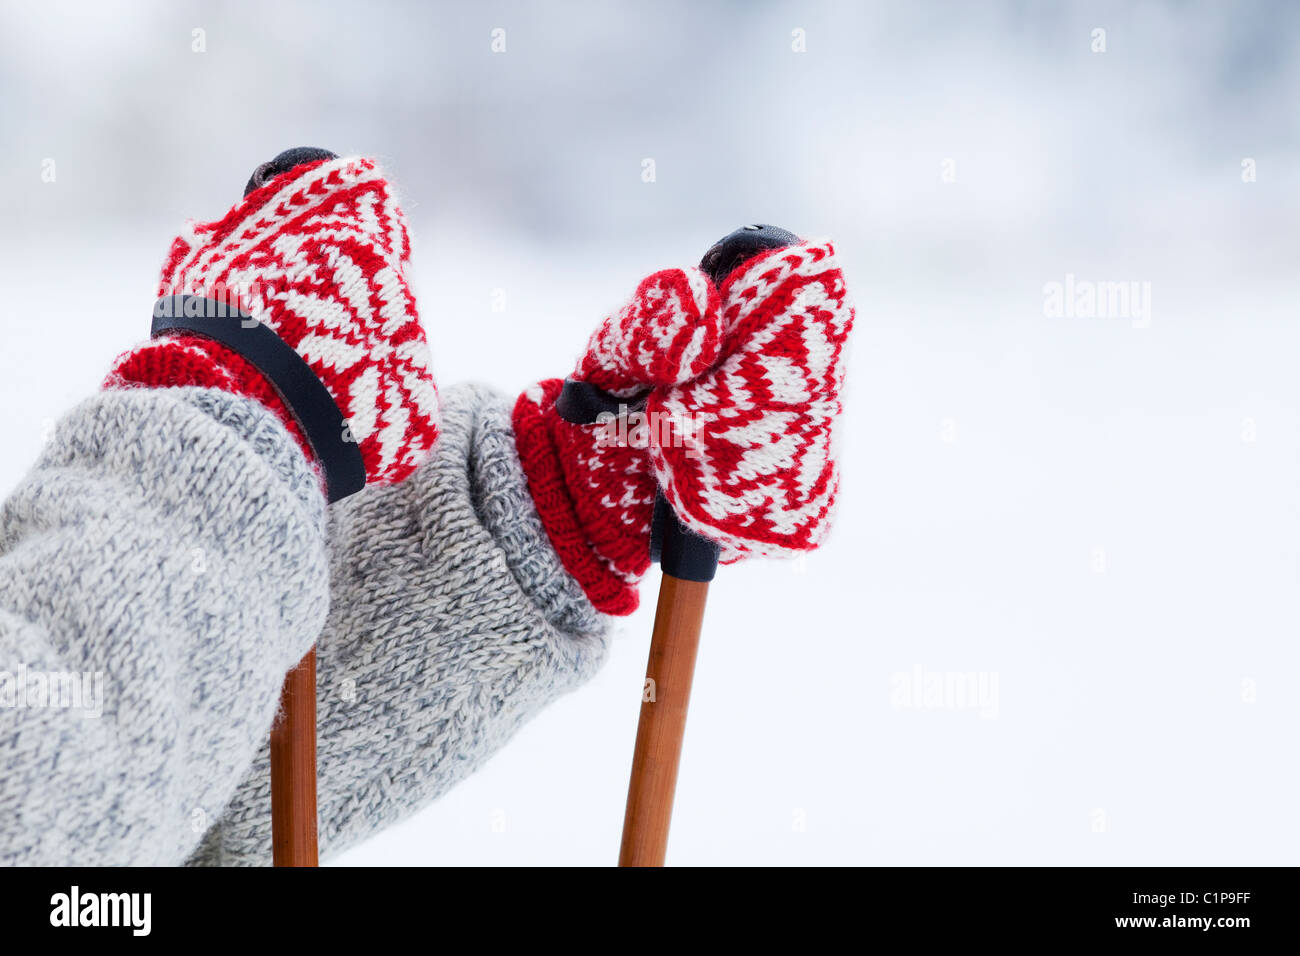 Person holding ski poles - Stock Image